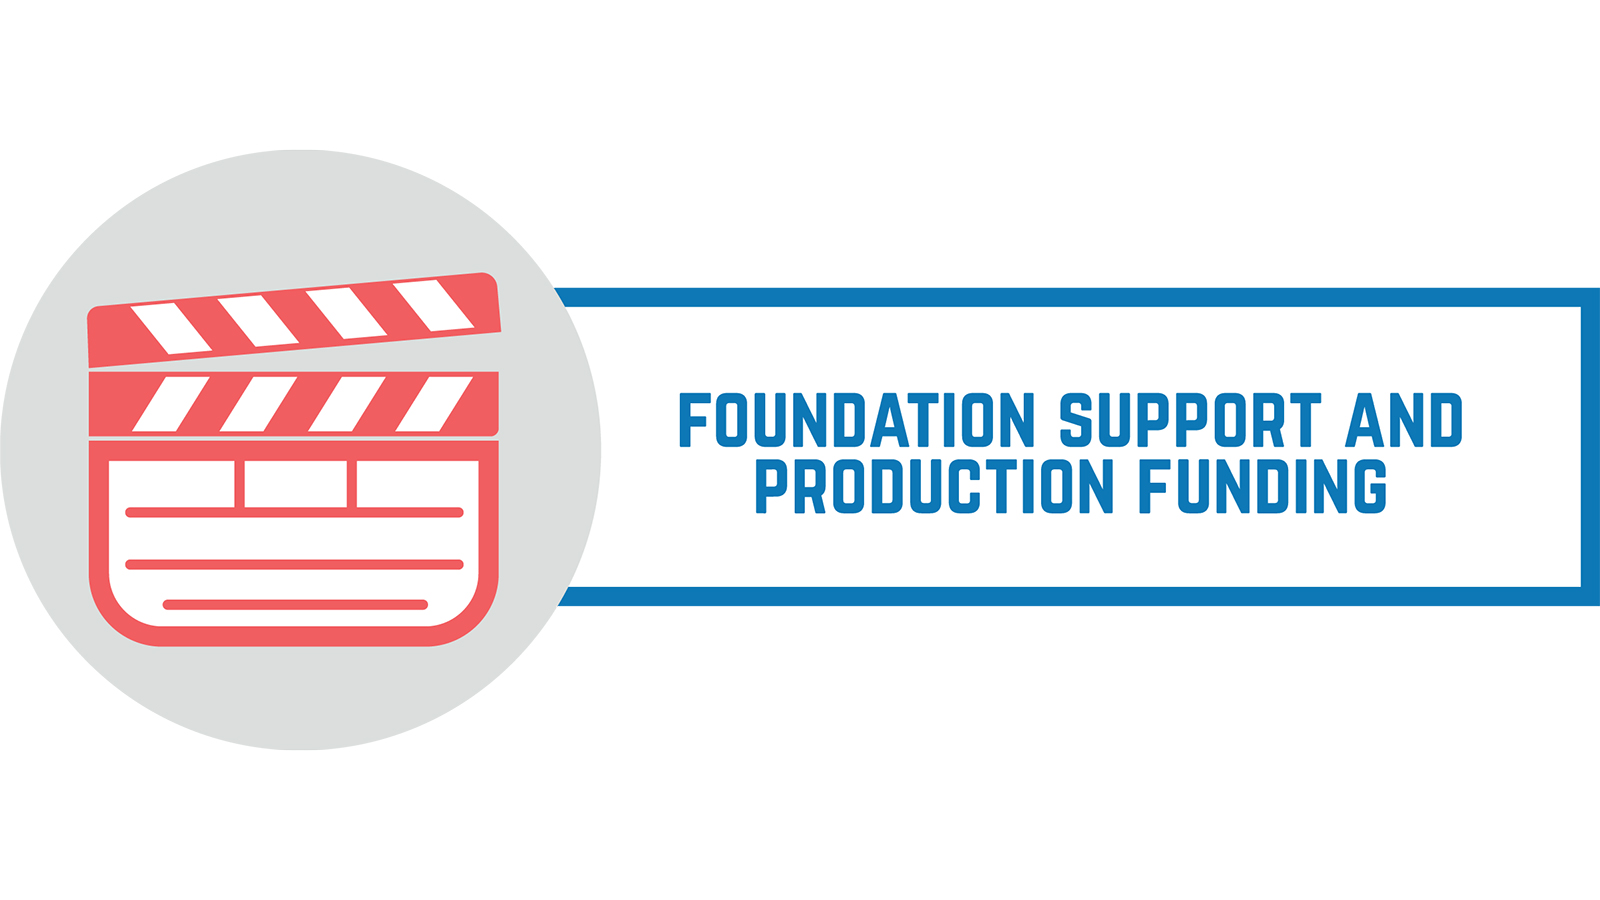 Foundation Support & Production Funding